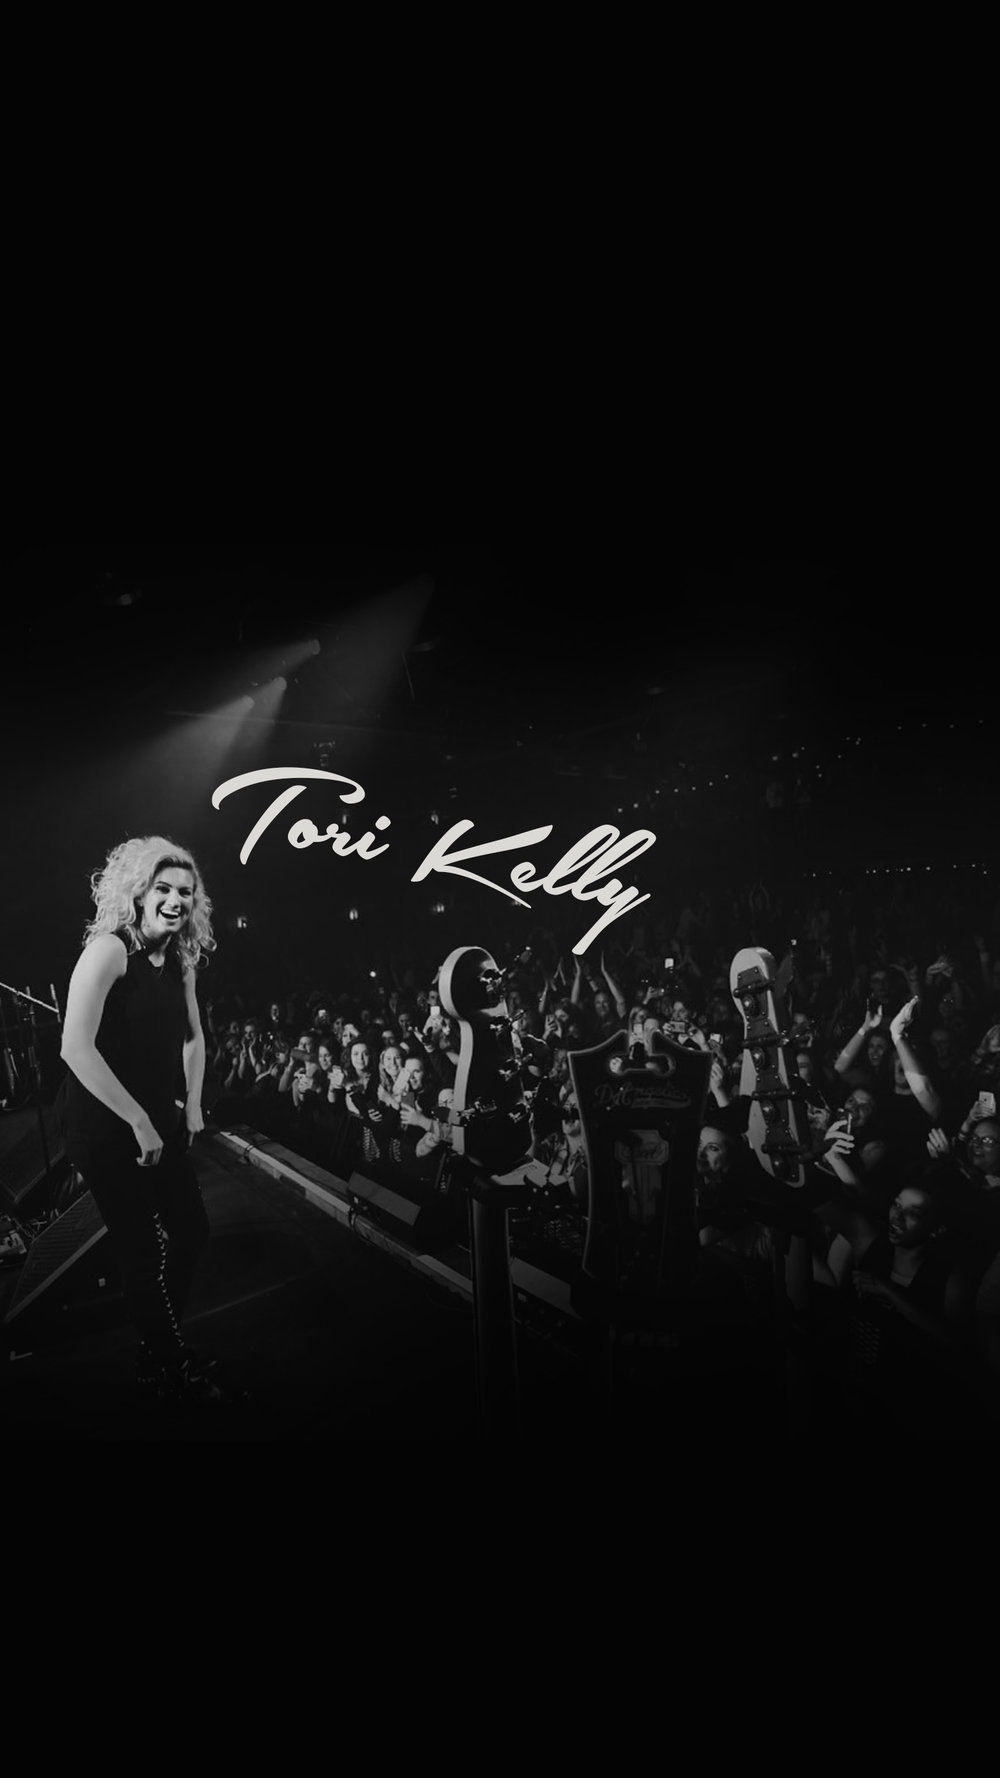 torikelly-lockscreen7.jpg